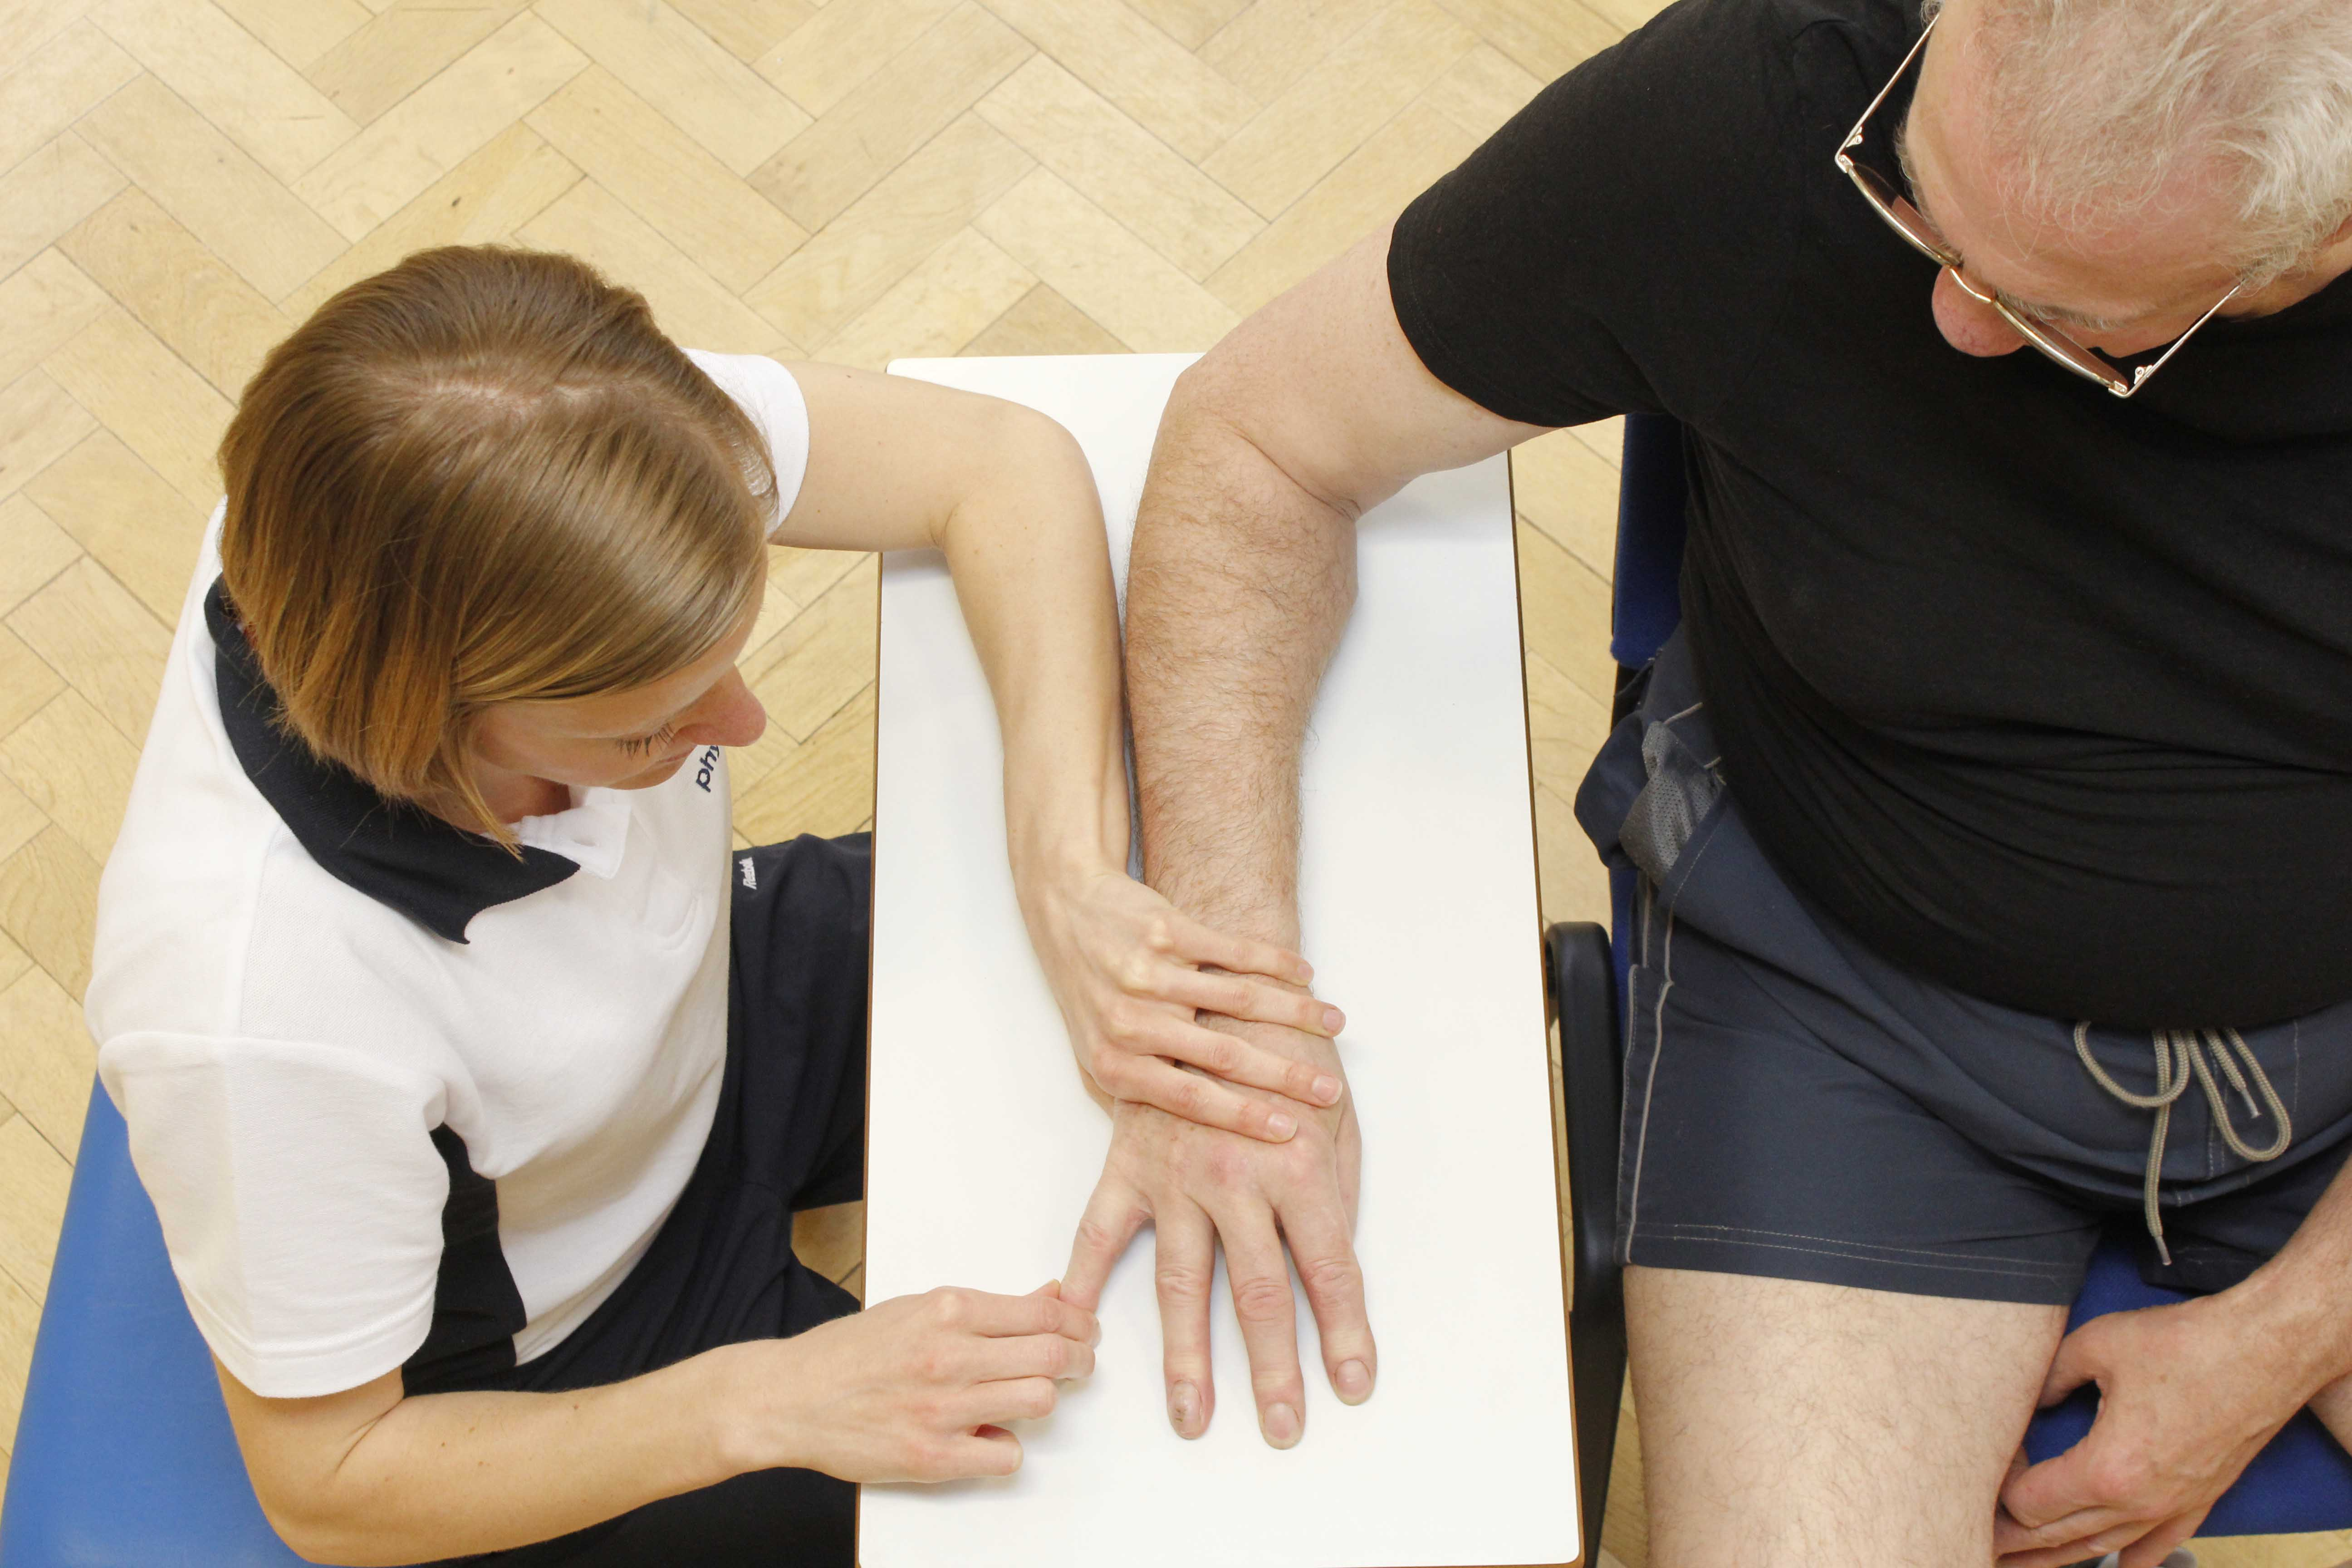 Soft tissue massage and mobilisations of the hand and fingers